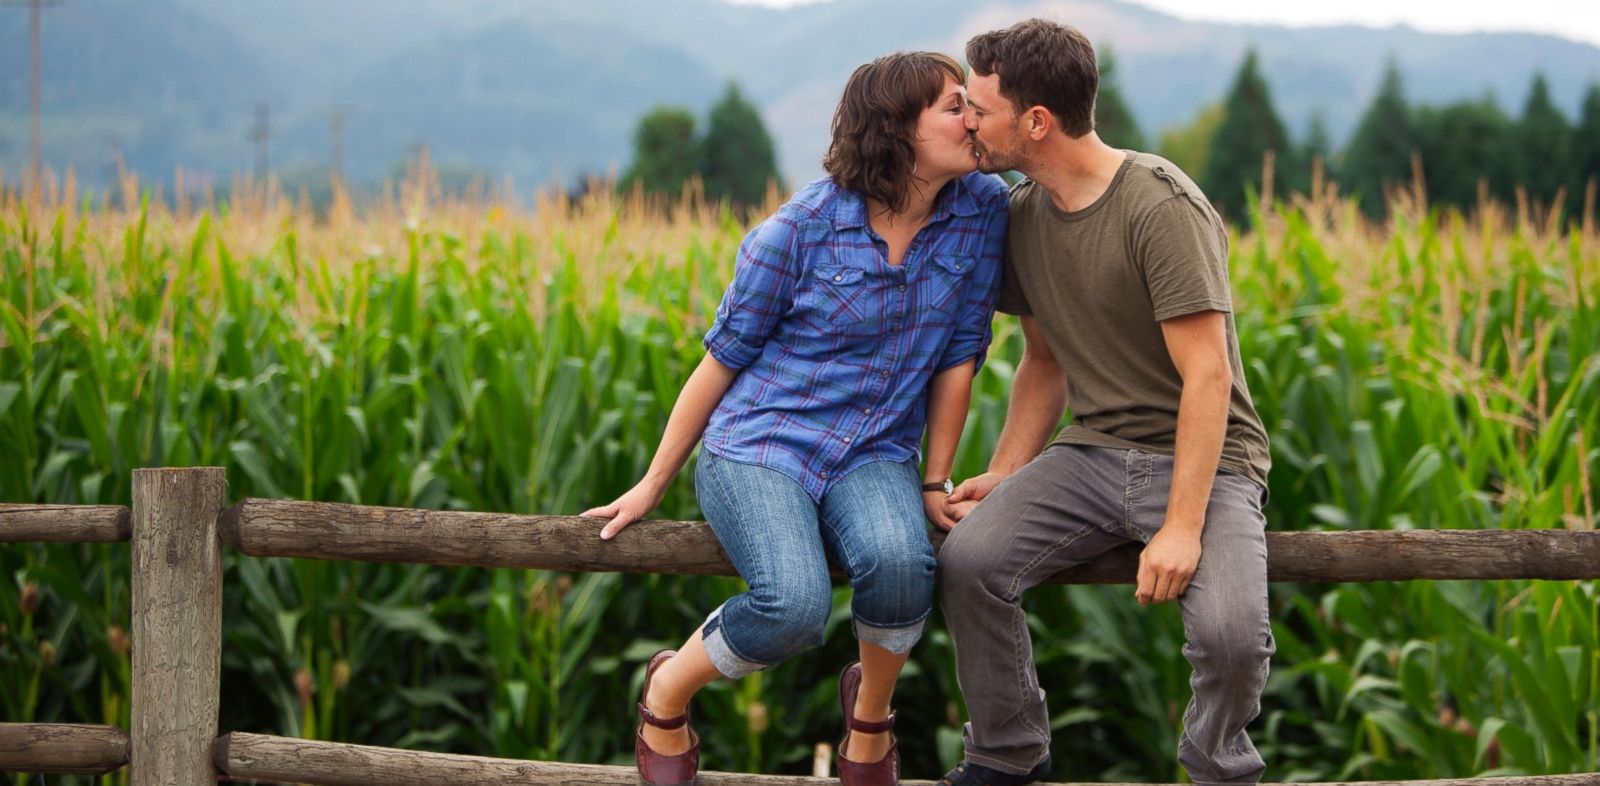 All farmer in usa dating site free fees